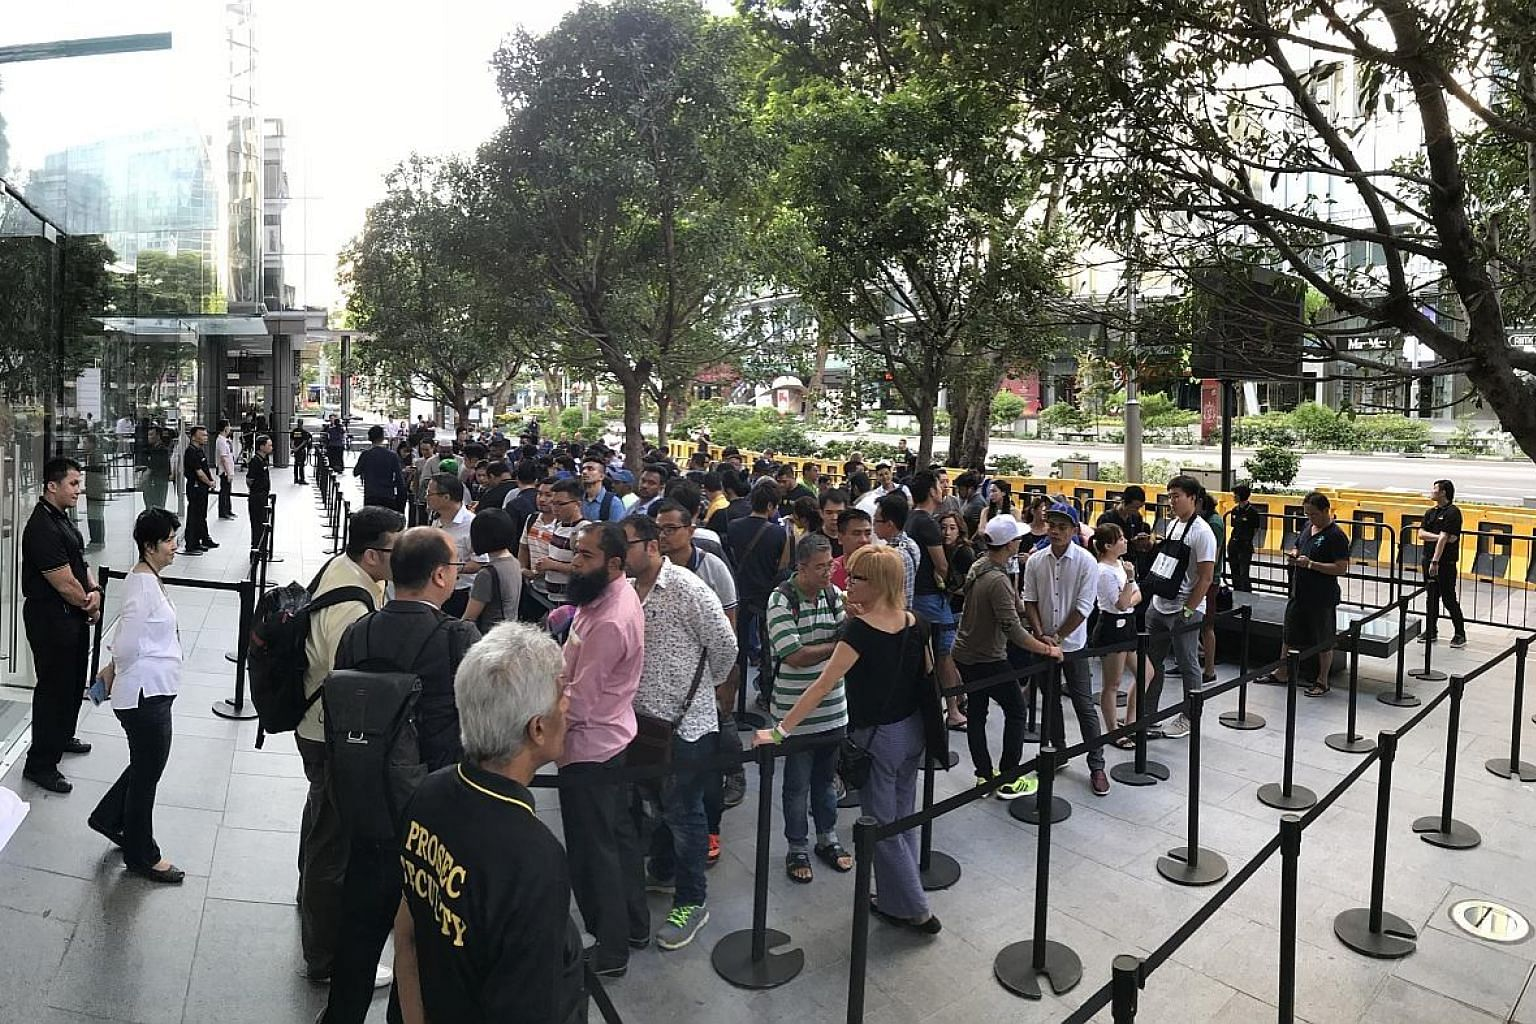 Mr Amin Ahmed Dholiya was first in the queue, having arrived at the store at around 7pm on Thursday. It was his first time queueing overnight for something, he said. He returned home last night. The queue outside Apple Orchard Road at 7.32am yesterda